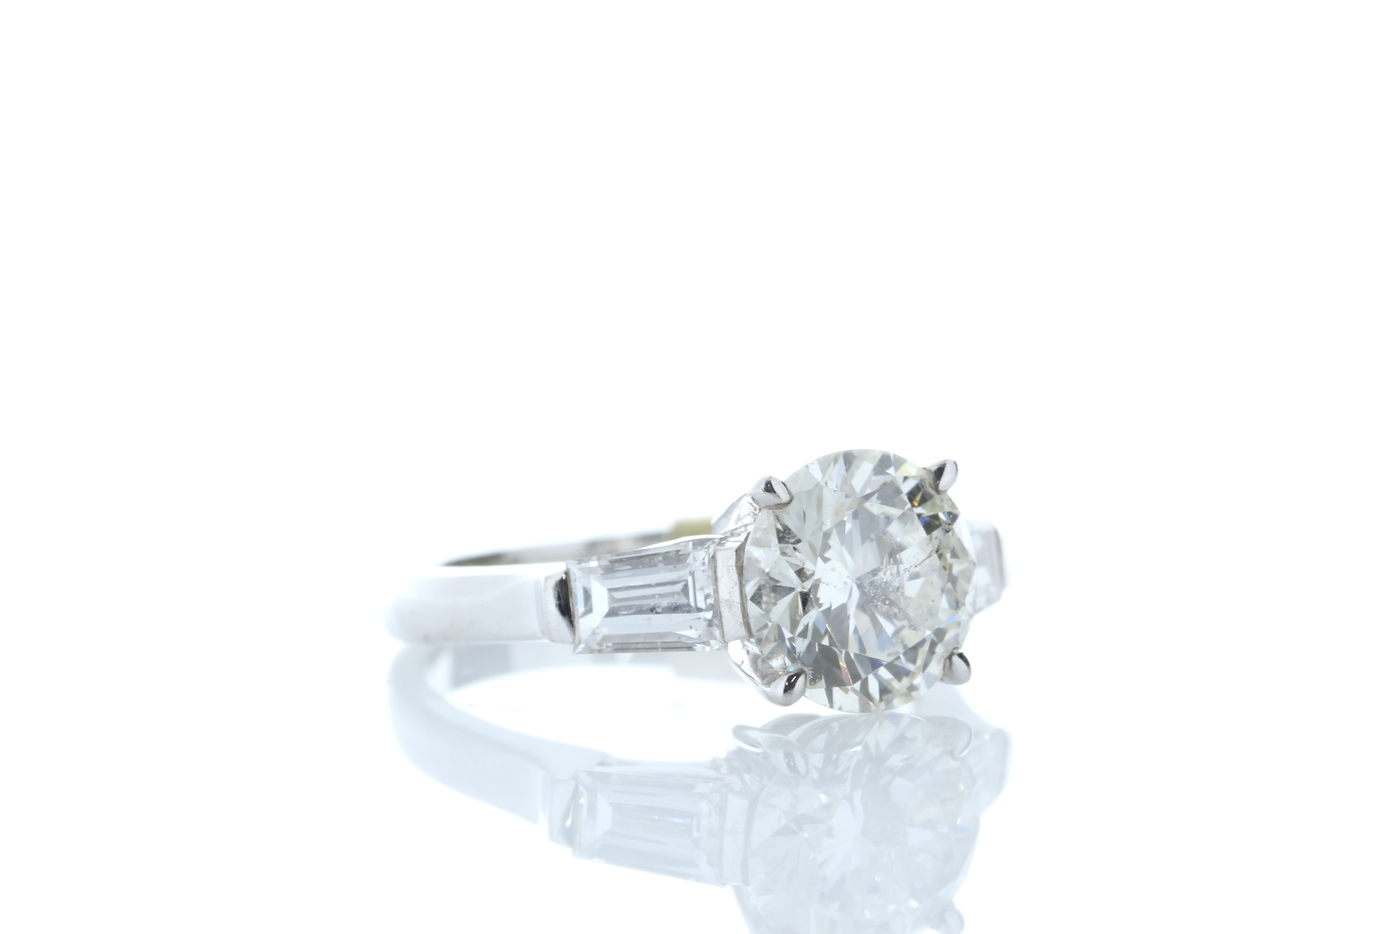 Lot 26 - 18ct White Gold Baguette Shoulders Diamond Ring 2.20 Carats